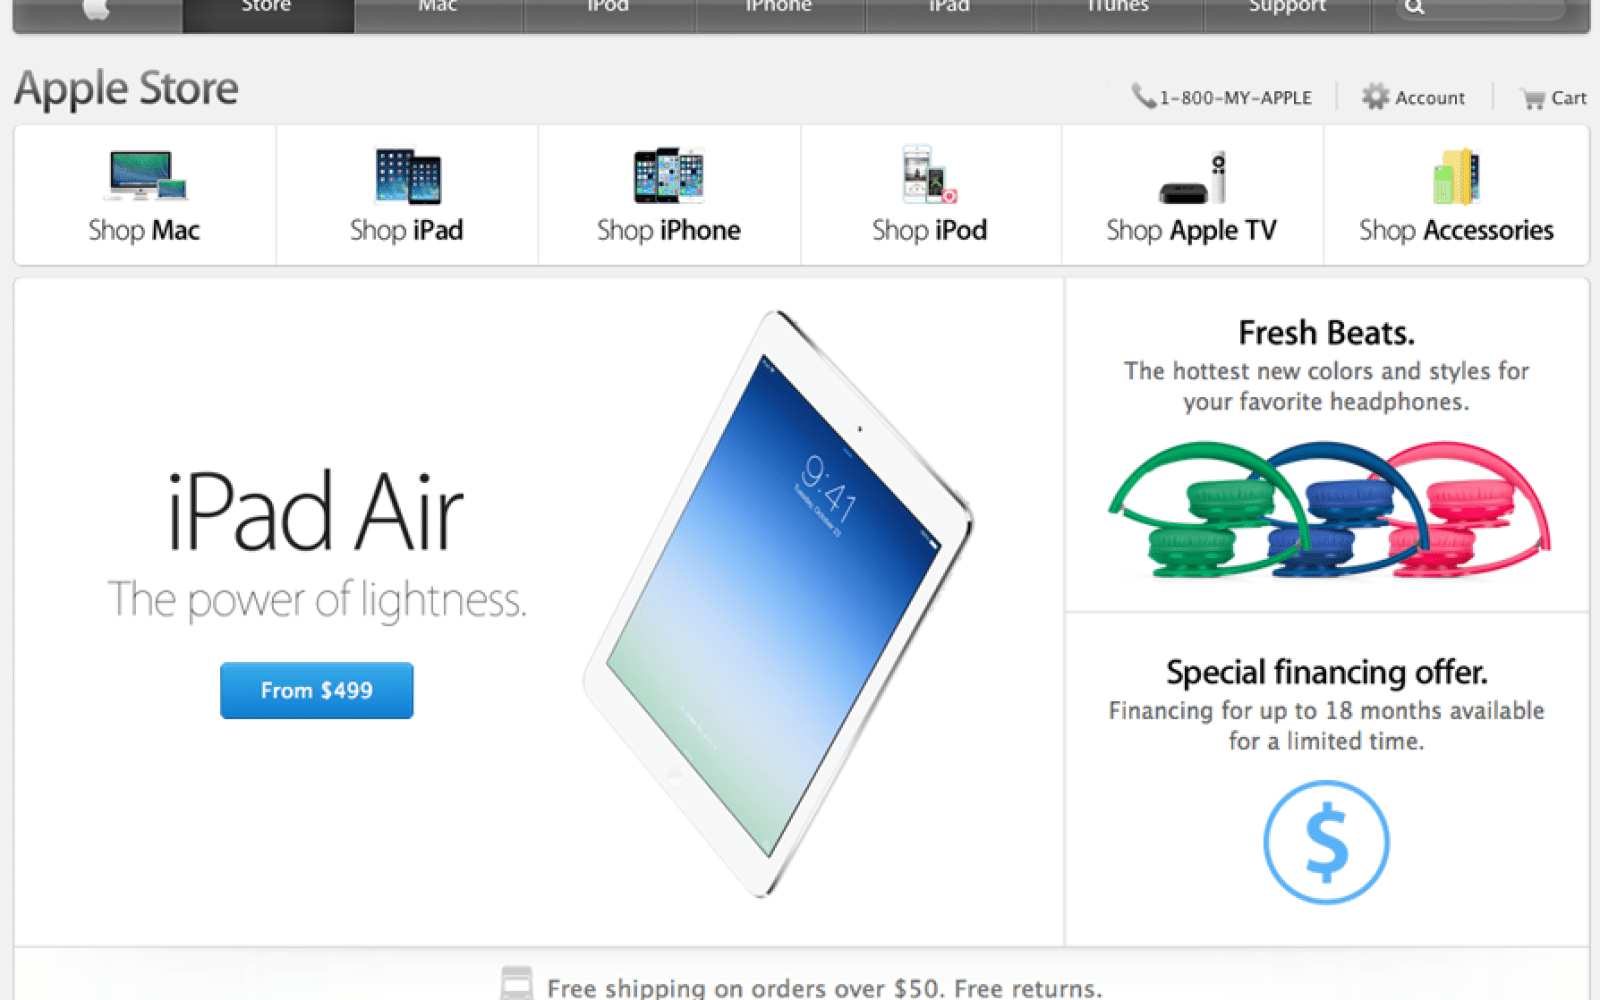 Apple promotes accessories to their own tab on the online store homepage